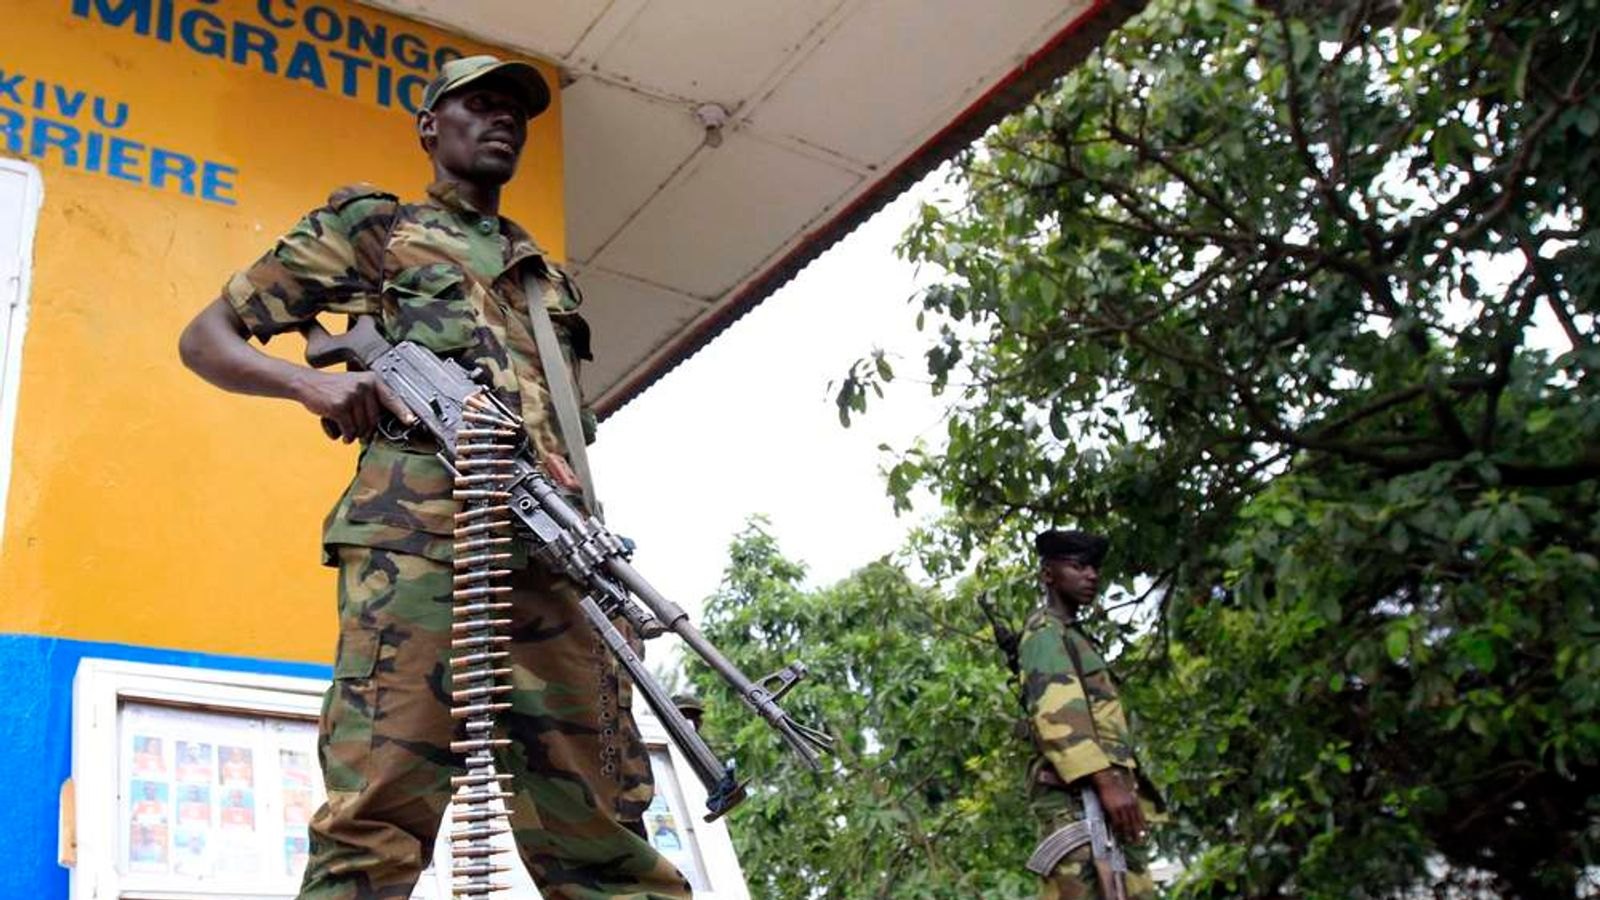 Soon after capturing the city from the government army. Rebels widely believed to be backed by Rwanda claimed control of Goma in the eastern Democratic Republic of Congo.